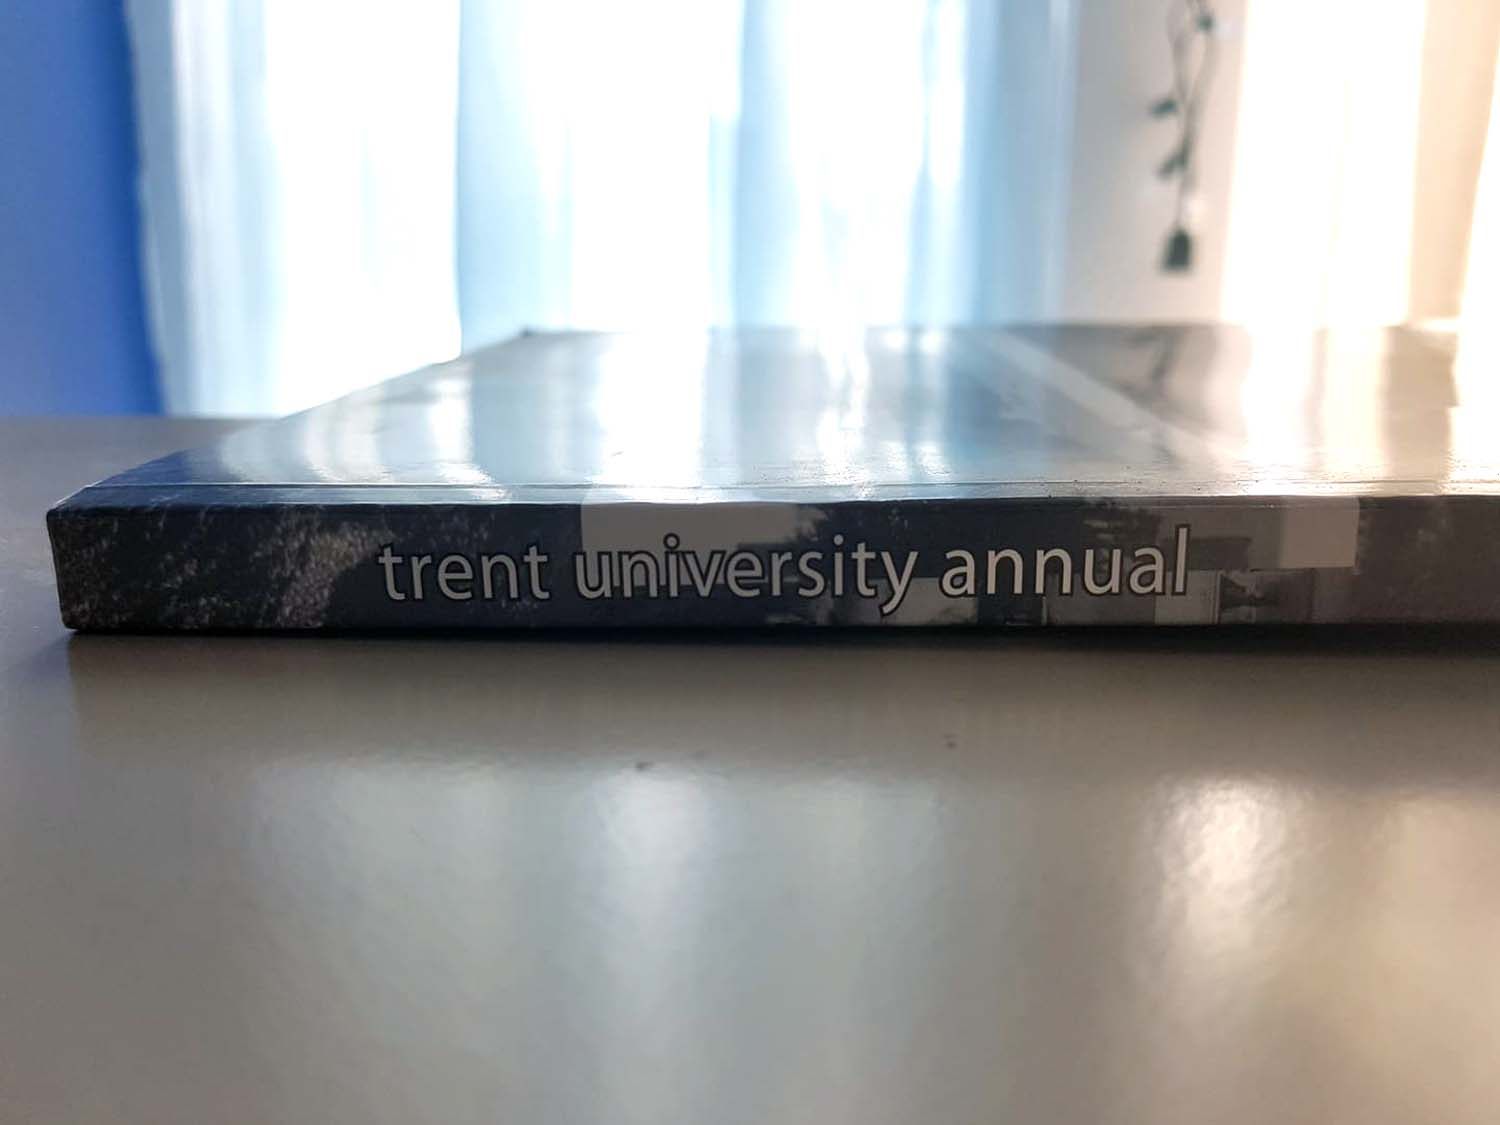 Trent Annual a Longtime Tradition